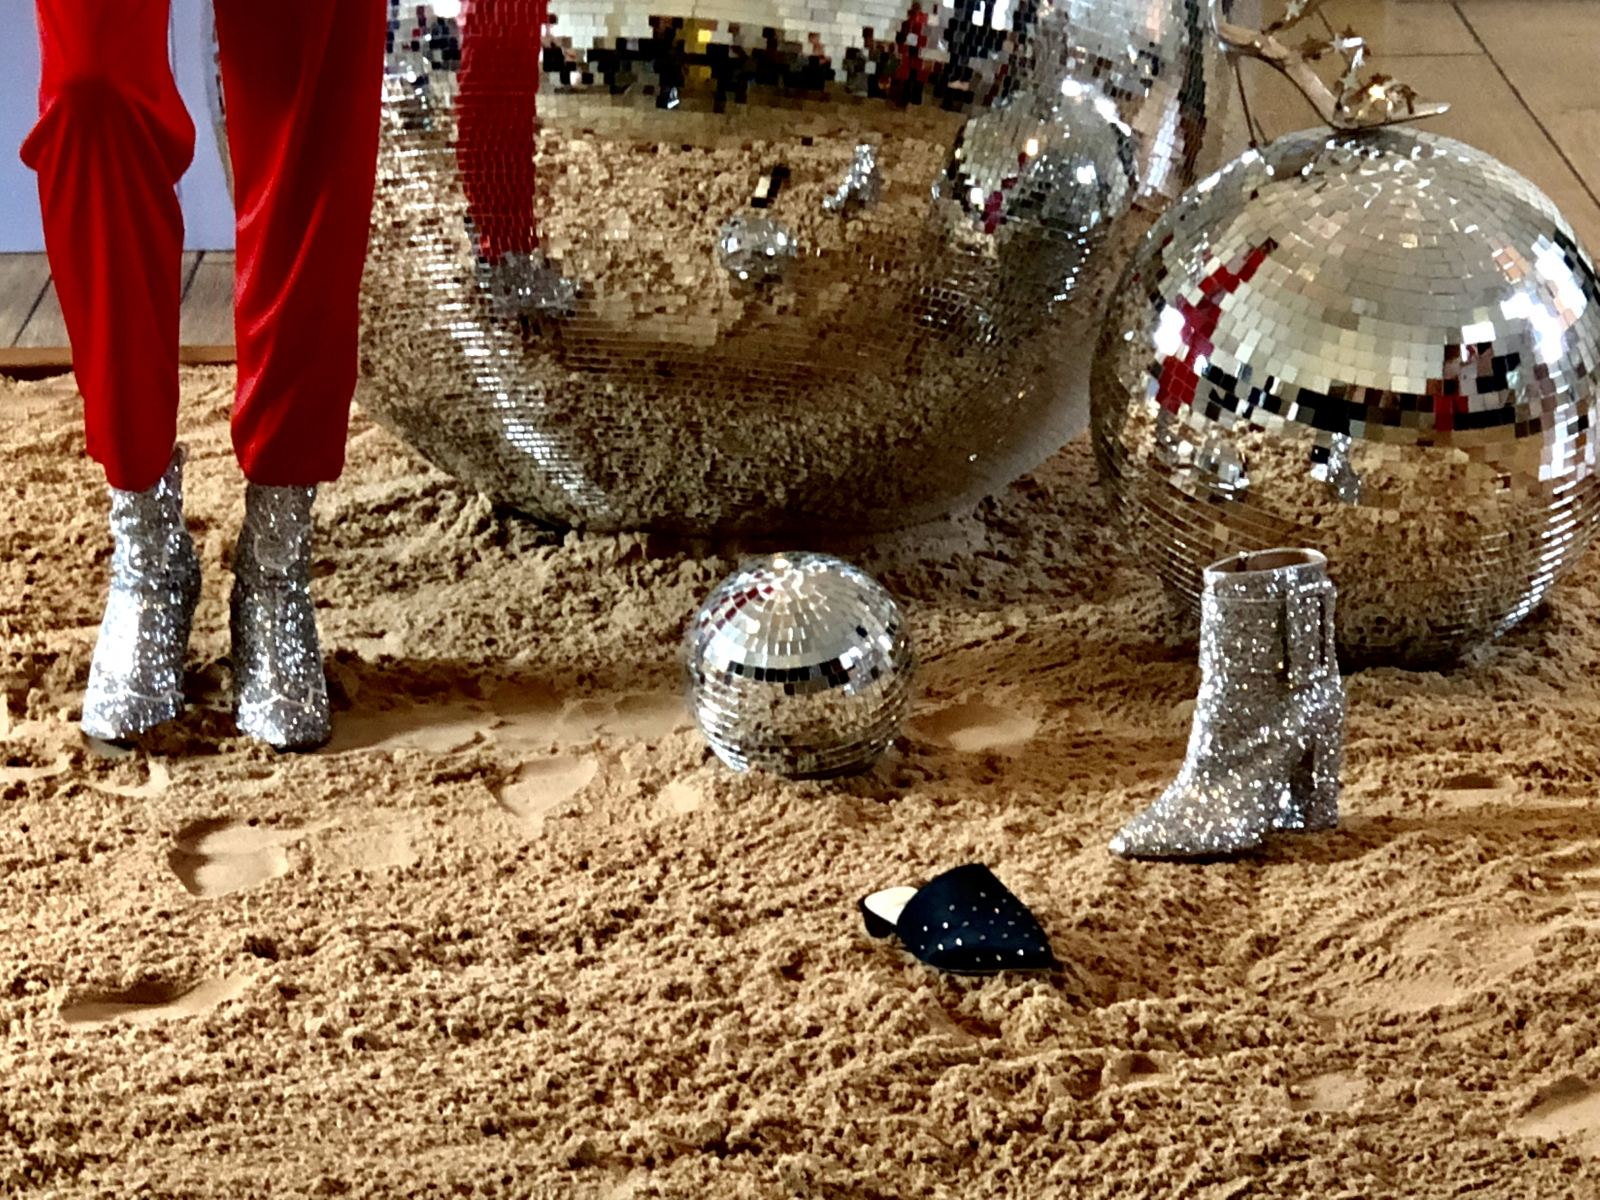 Alexander White FW18 London Fashion Week Lead Image of a disco ball and glittery cowboy boots